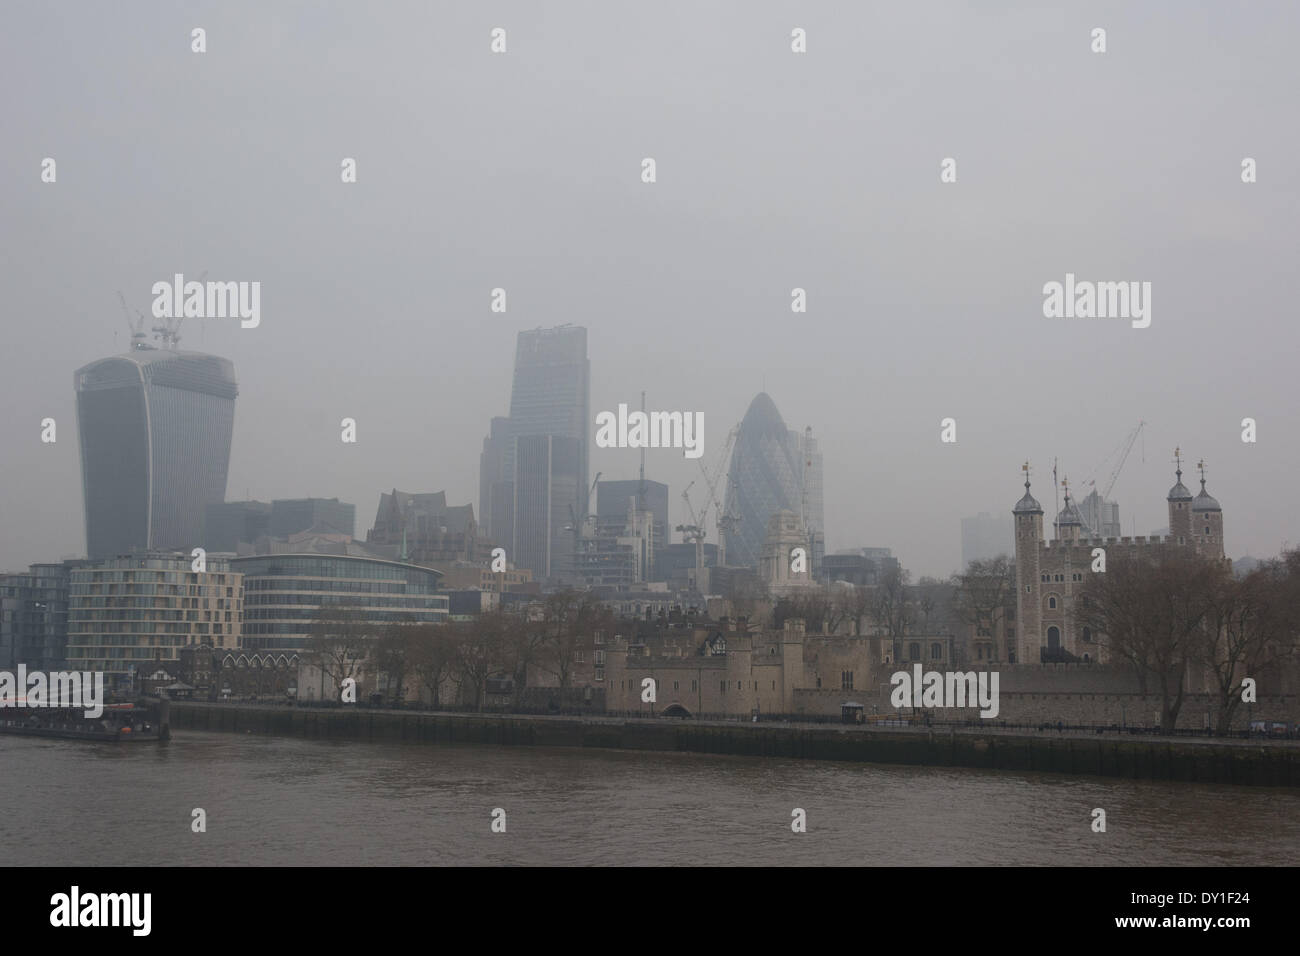 London's skyline including skyscrapers such as the Gherkin, the Walkie-Talkie, and the Tower of London lie under a blanket of smog. - Stock Image